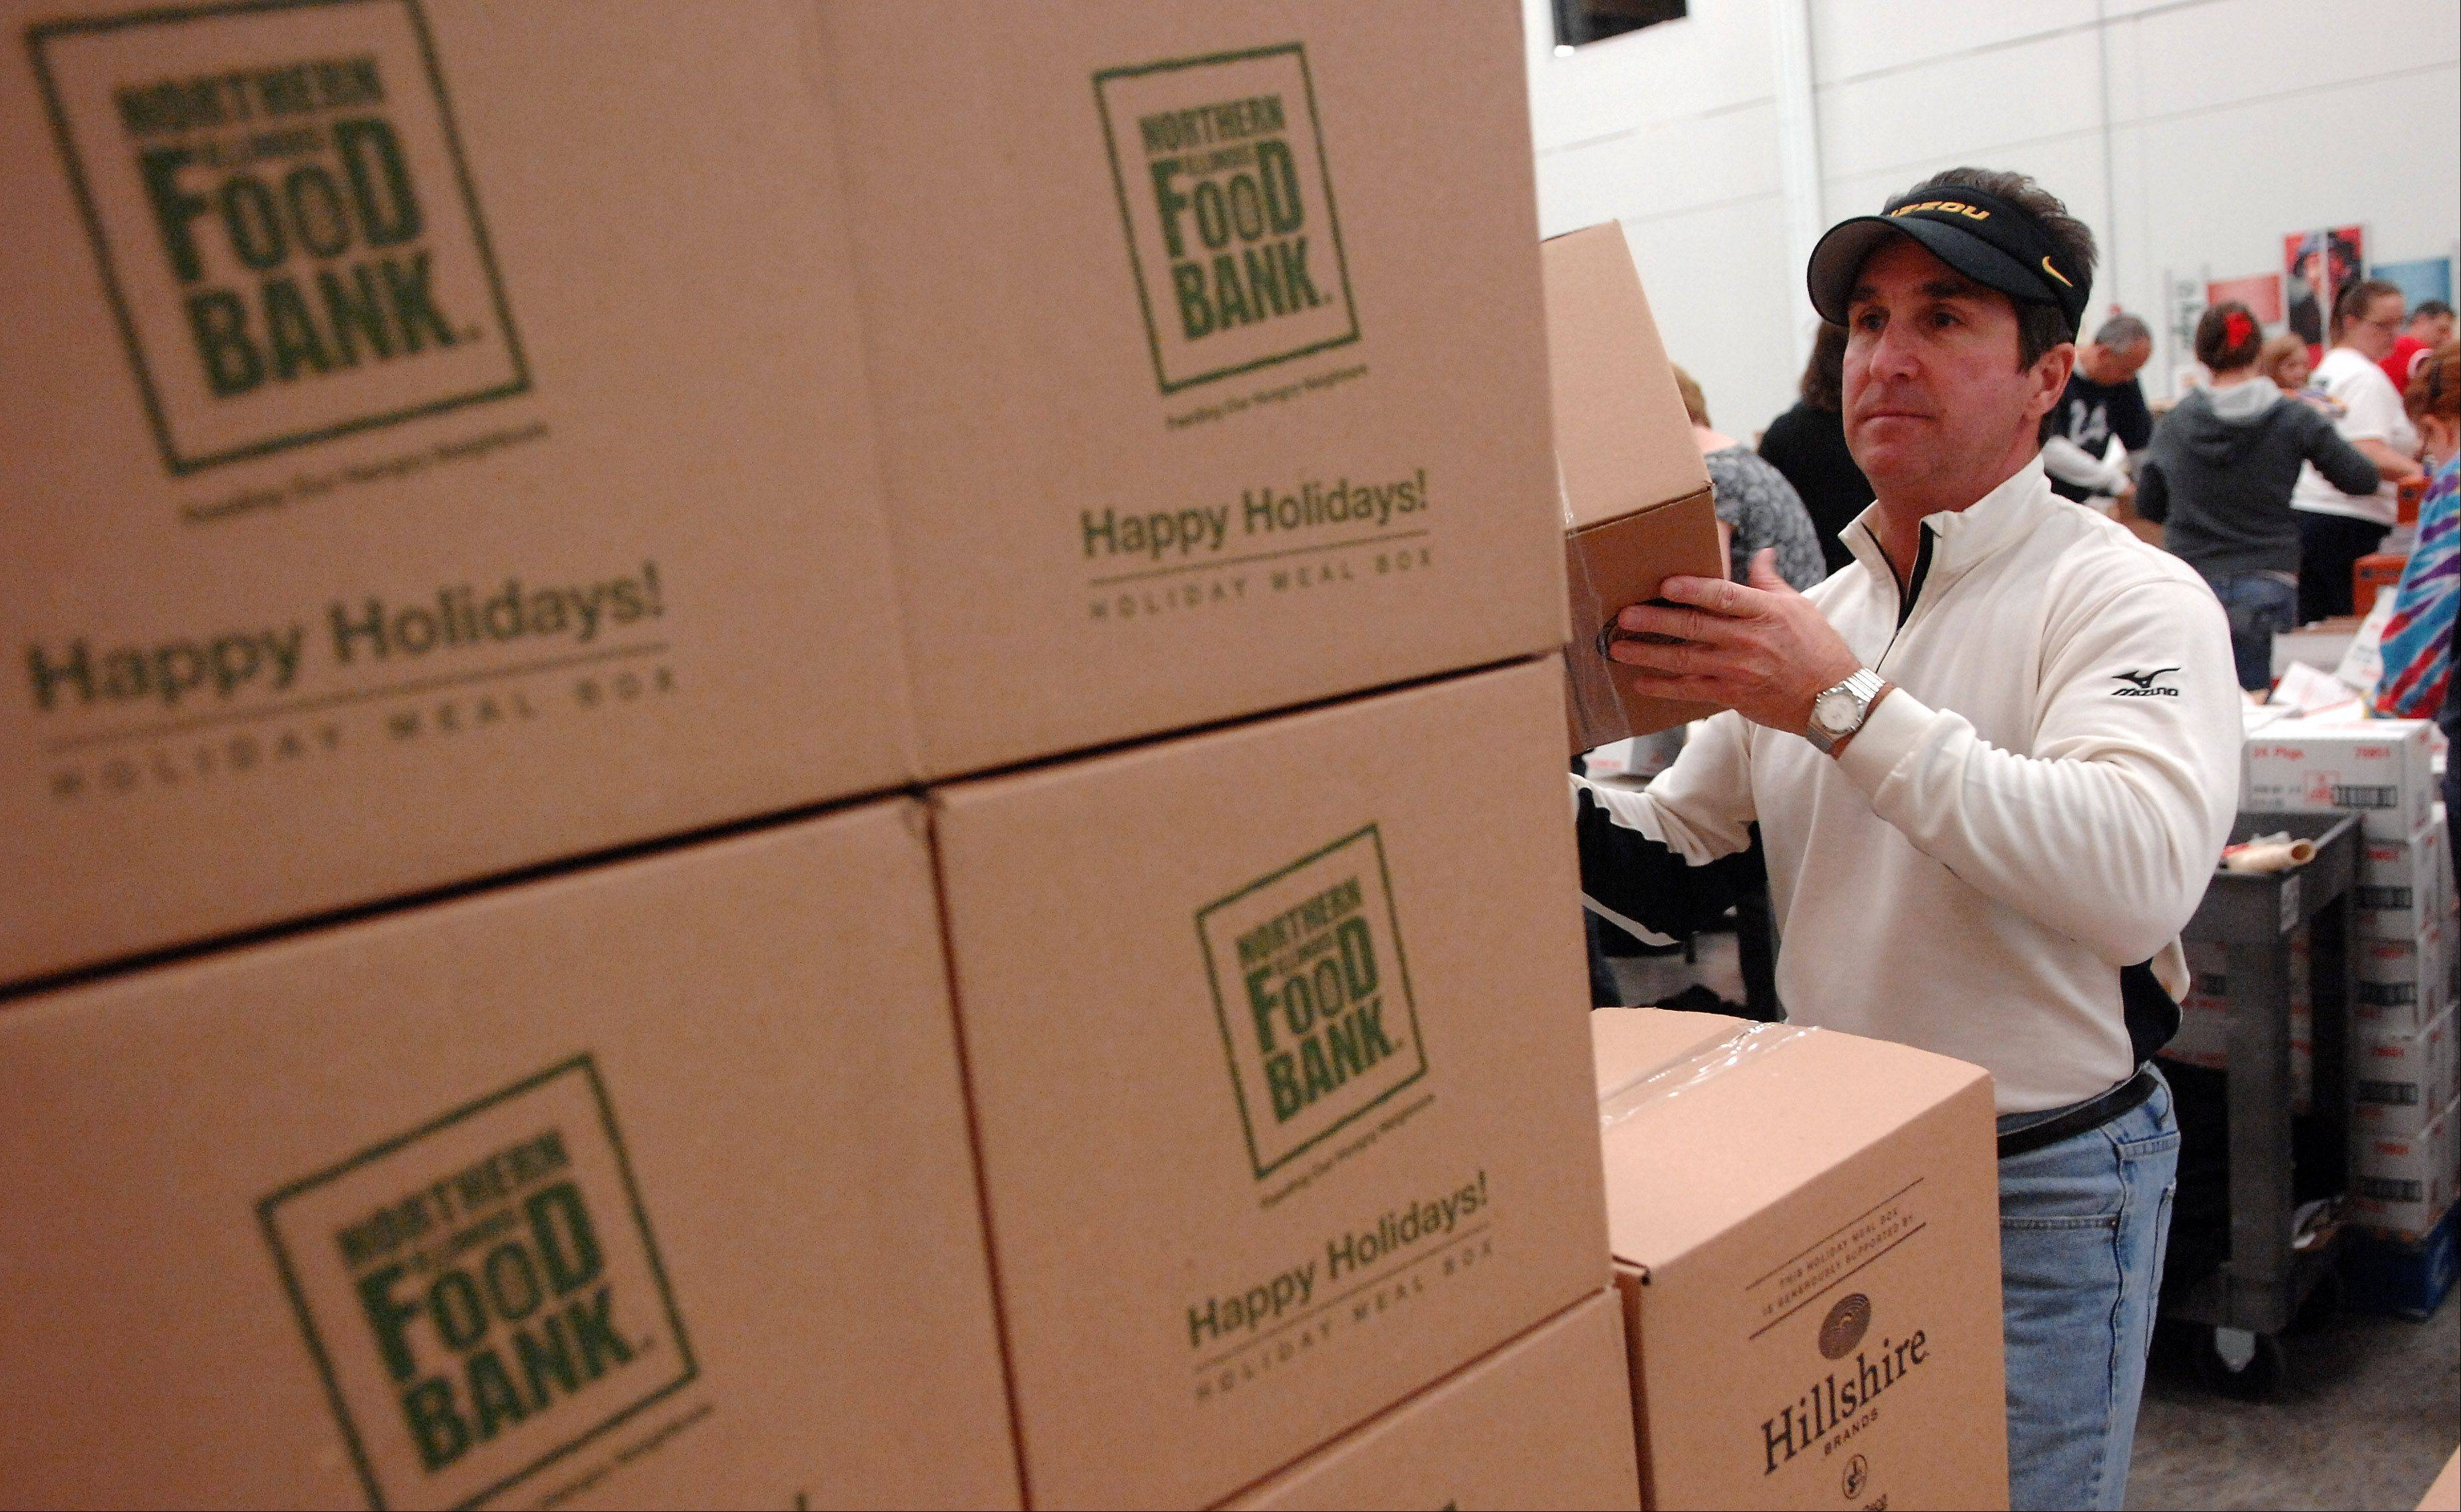 Jim Bolin of Plainfield and more than 100 other volunteers from Jewel-Osco pack boxes of holiday meals Saturday at the Northern Illinois Food Bank in Geneva. The event was one of the first in a six-week program during which the food bank will pack more than 30,000 holiday meals for the less fortunate.